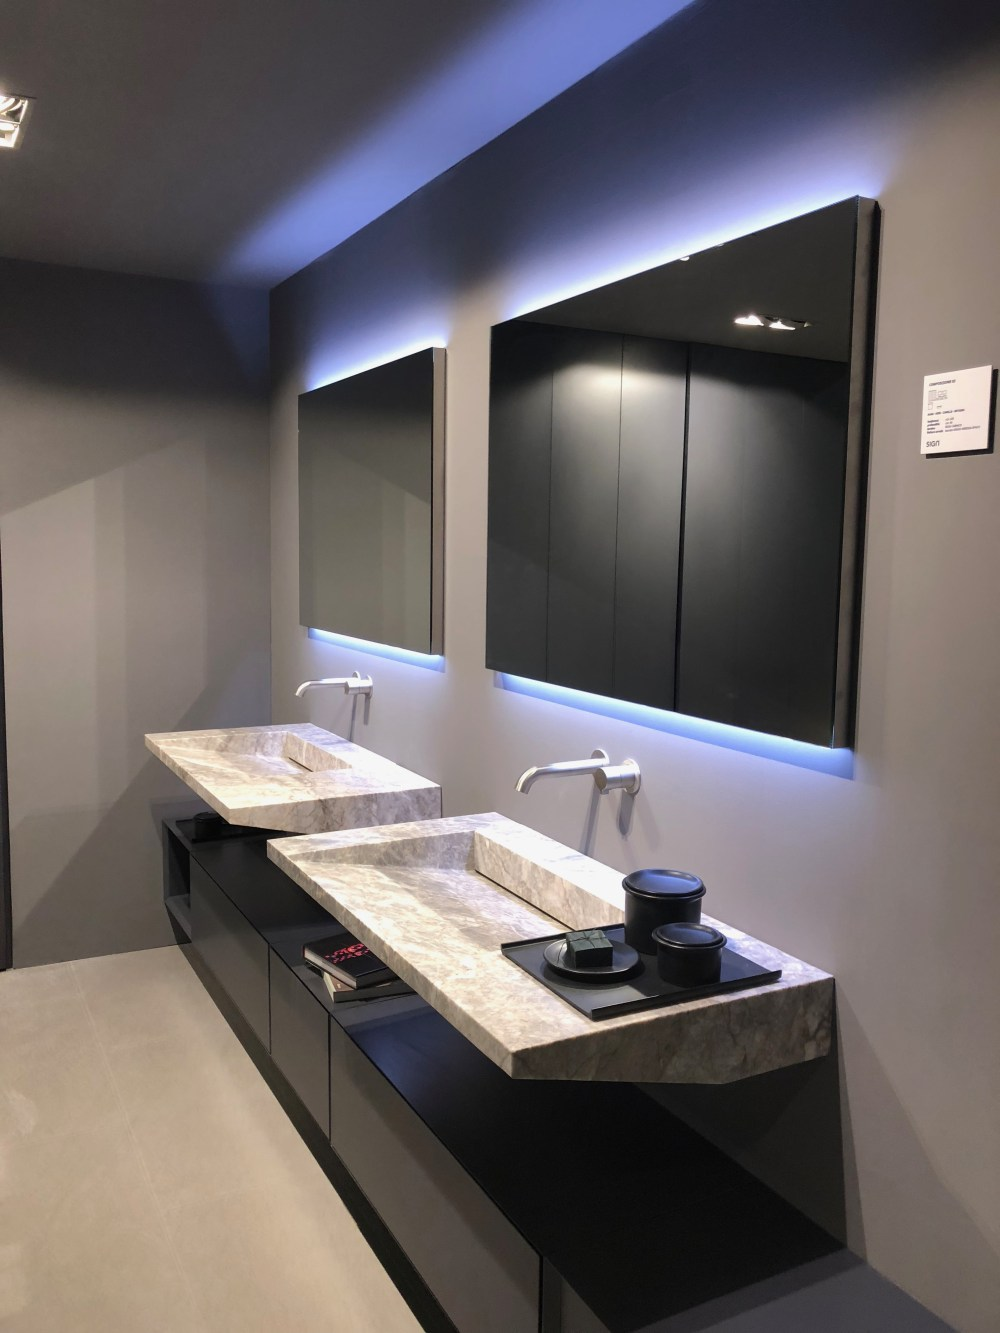 In some cases the cabinet and the sink or sinks can appear as separate structures